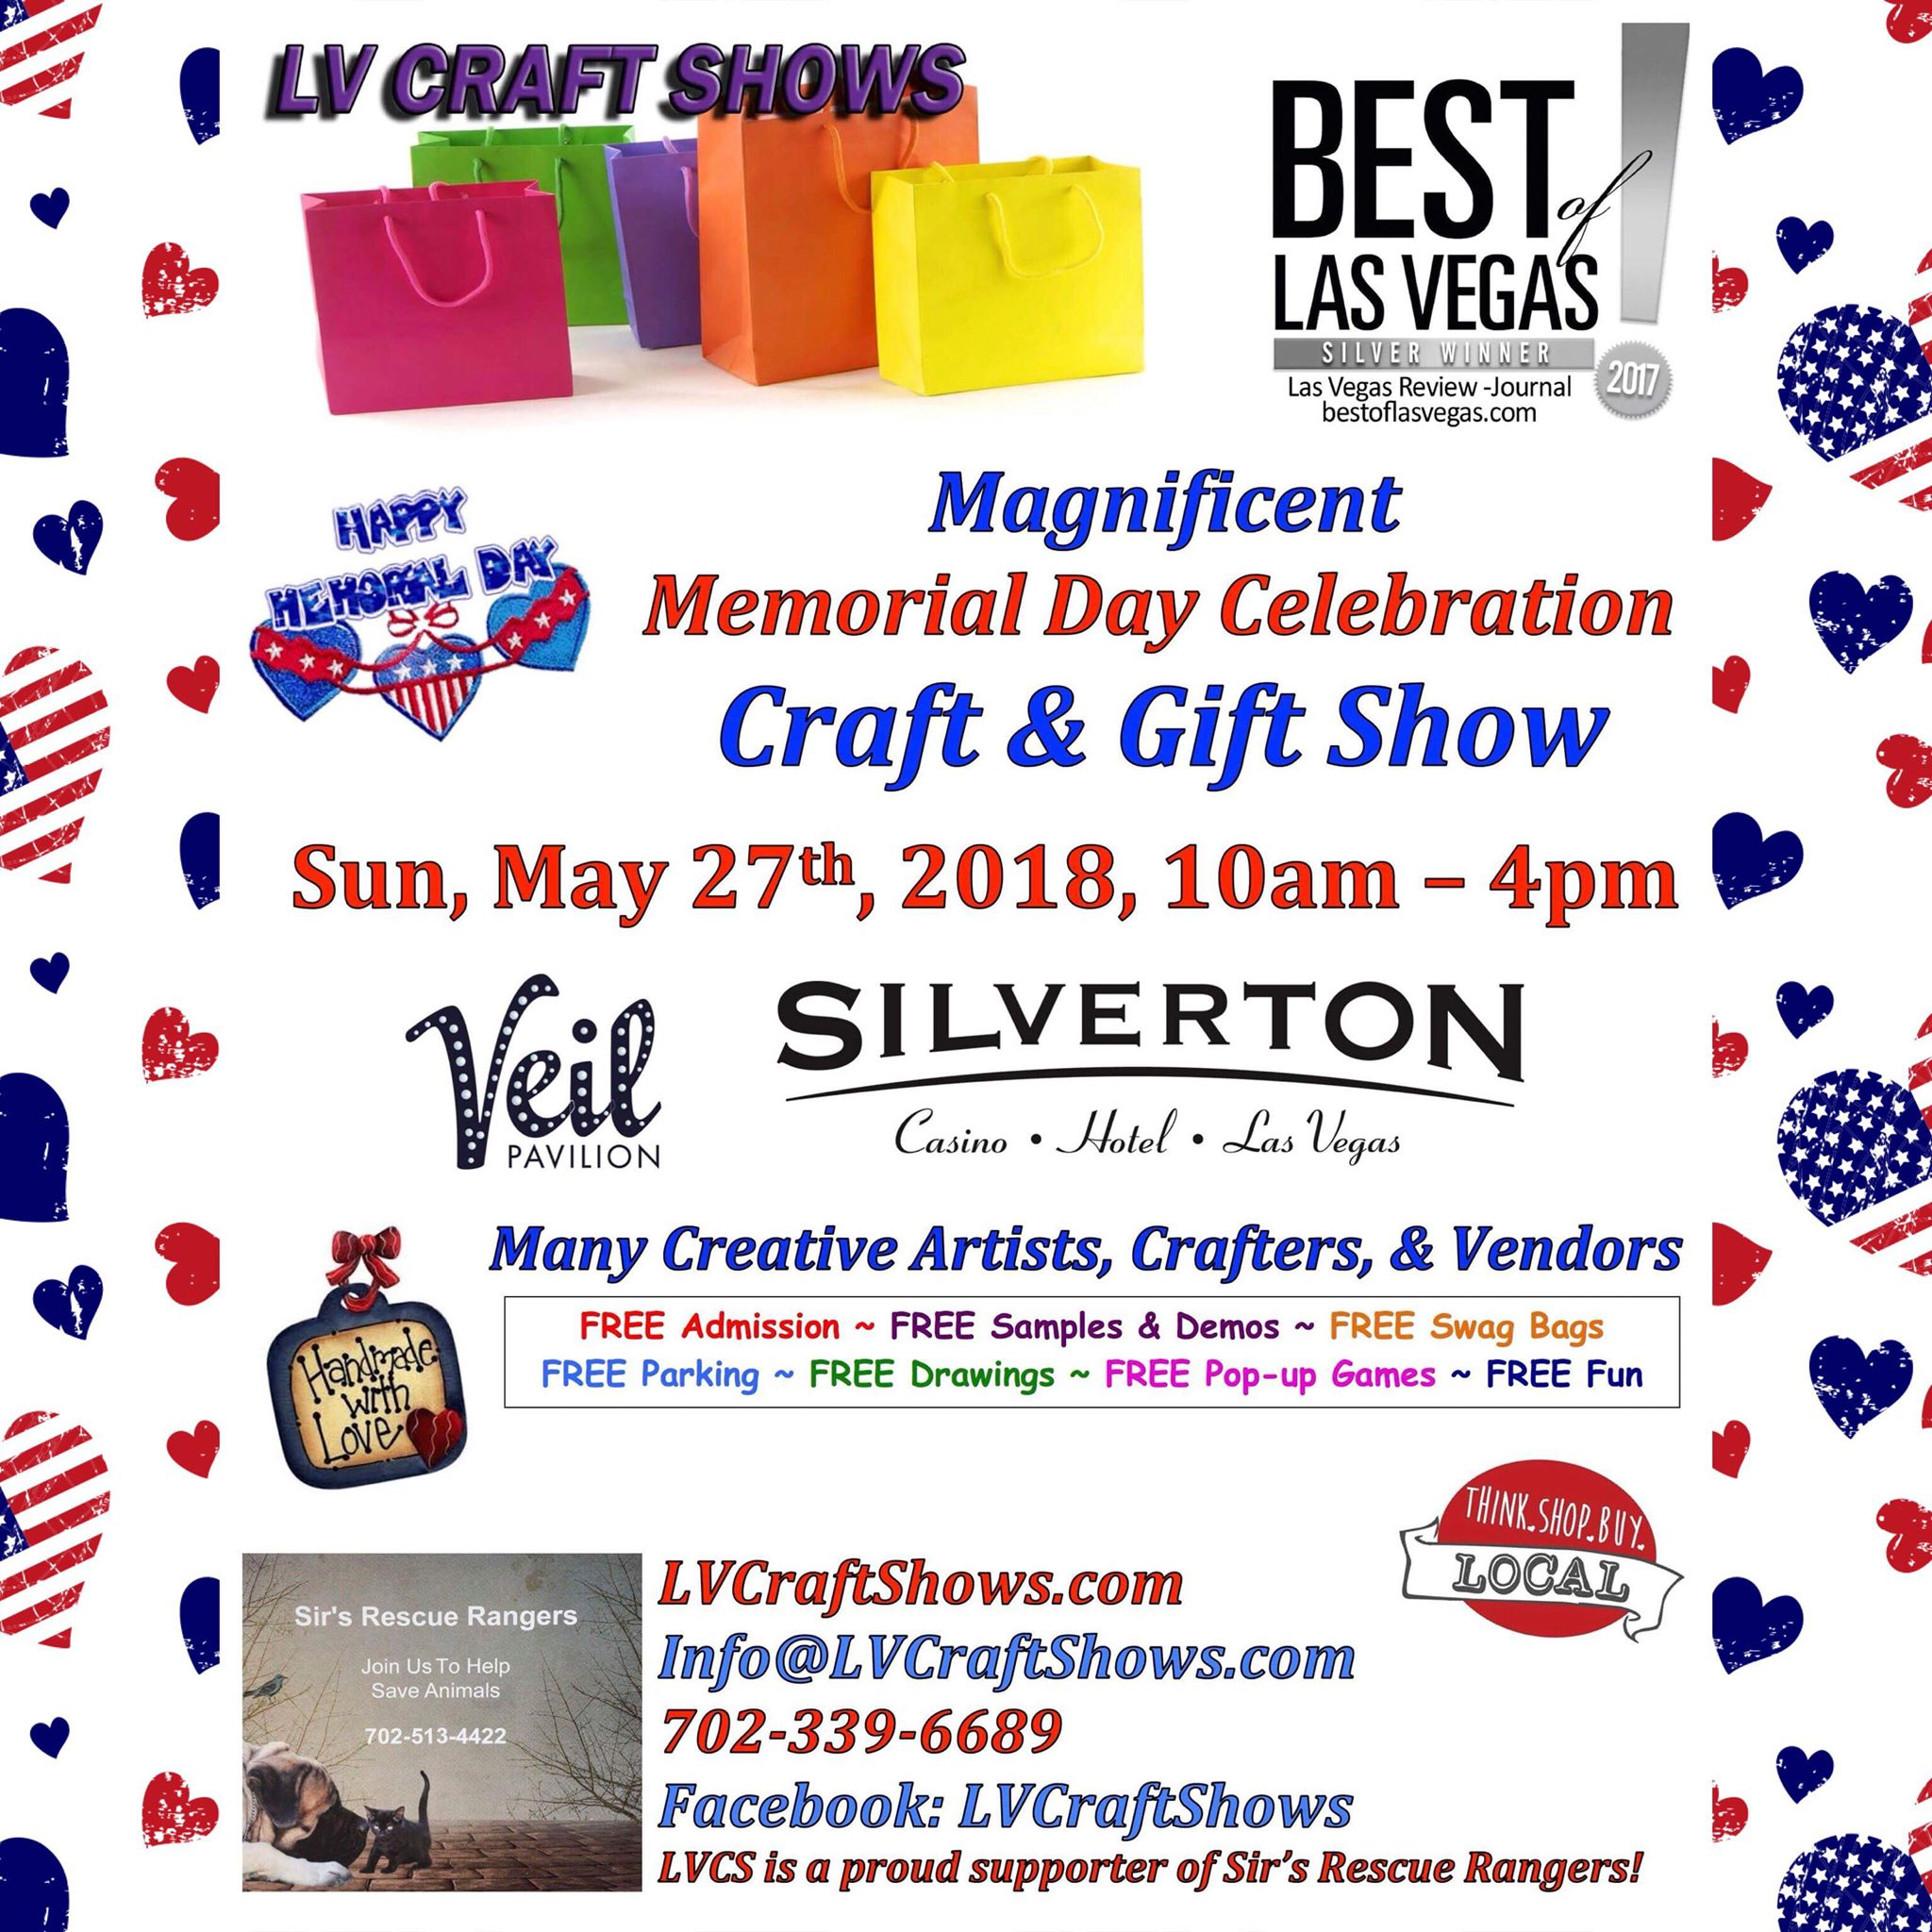 Looking for that special unique gift and something FUN to do with your family & friends, while supporting local artists, crafters, small businesses and ...